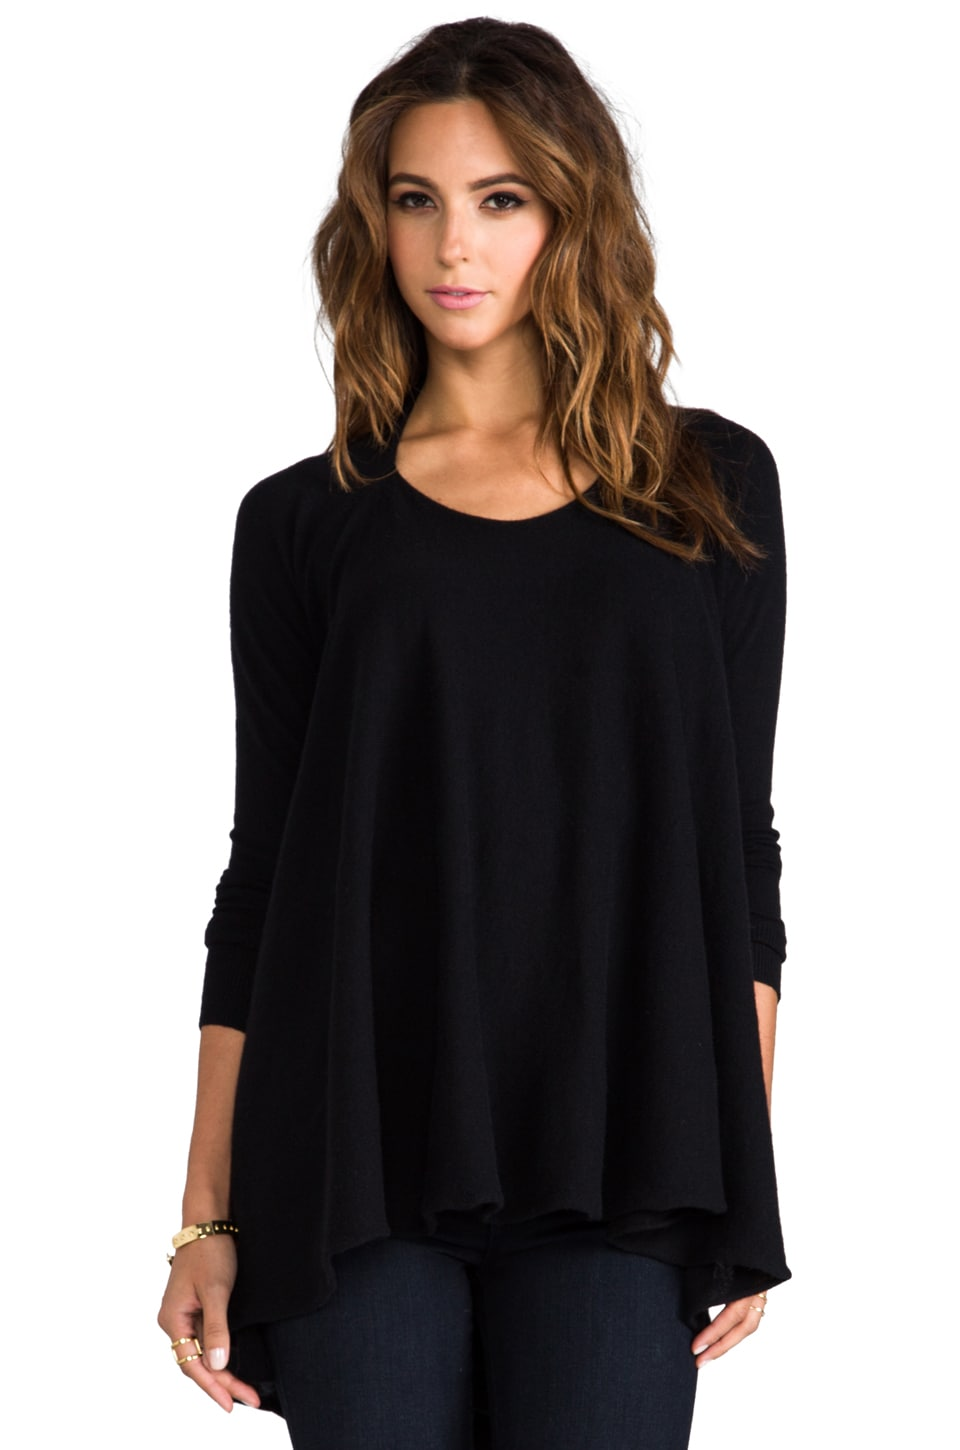 Autumn Cashmere Convertible Flare Tunic in Black